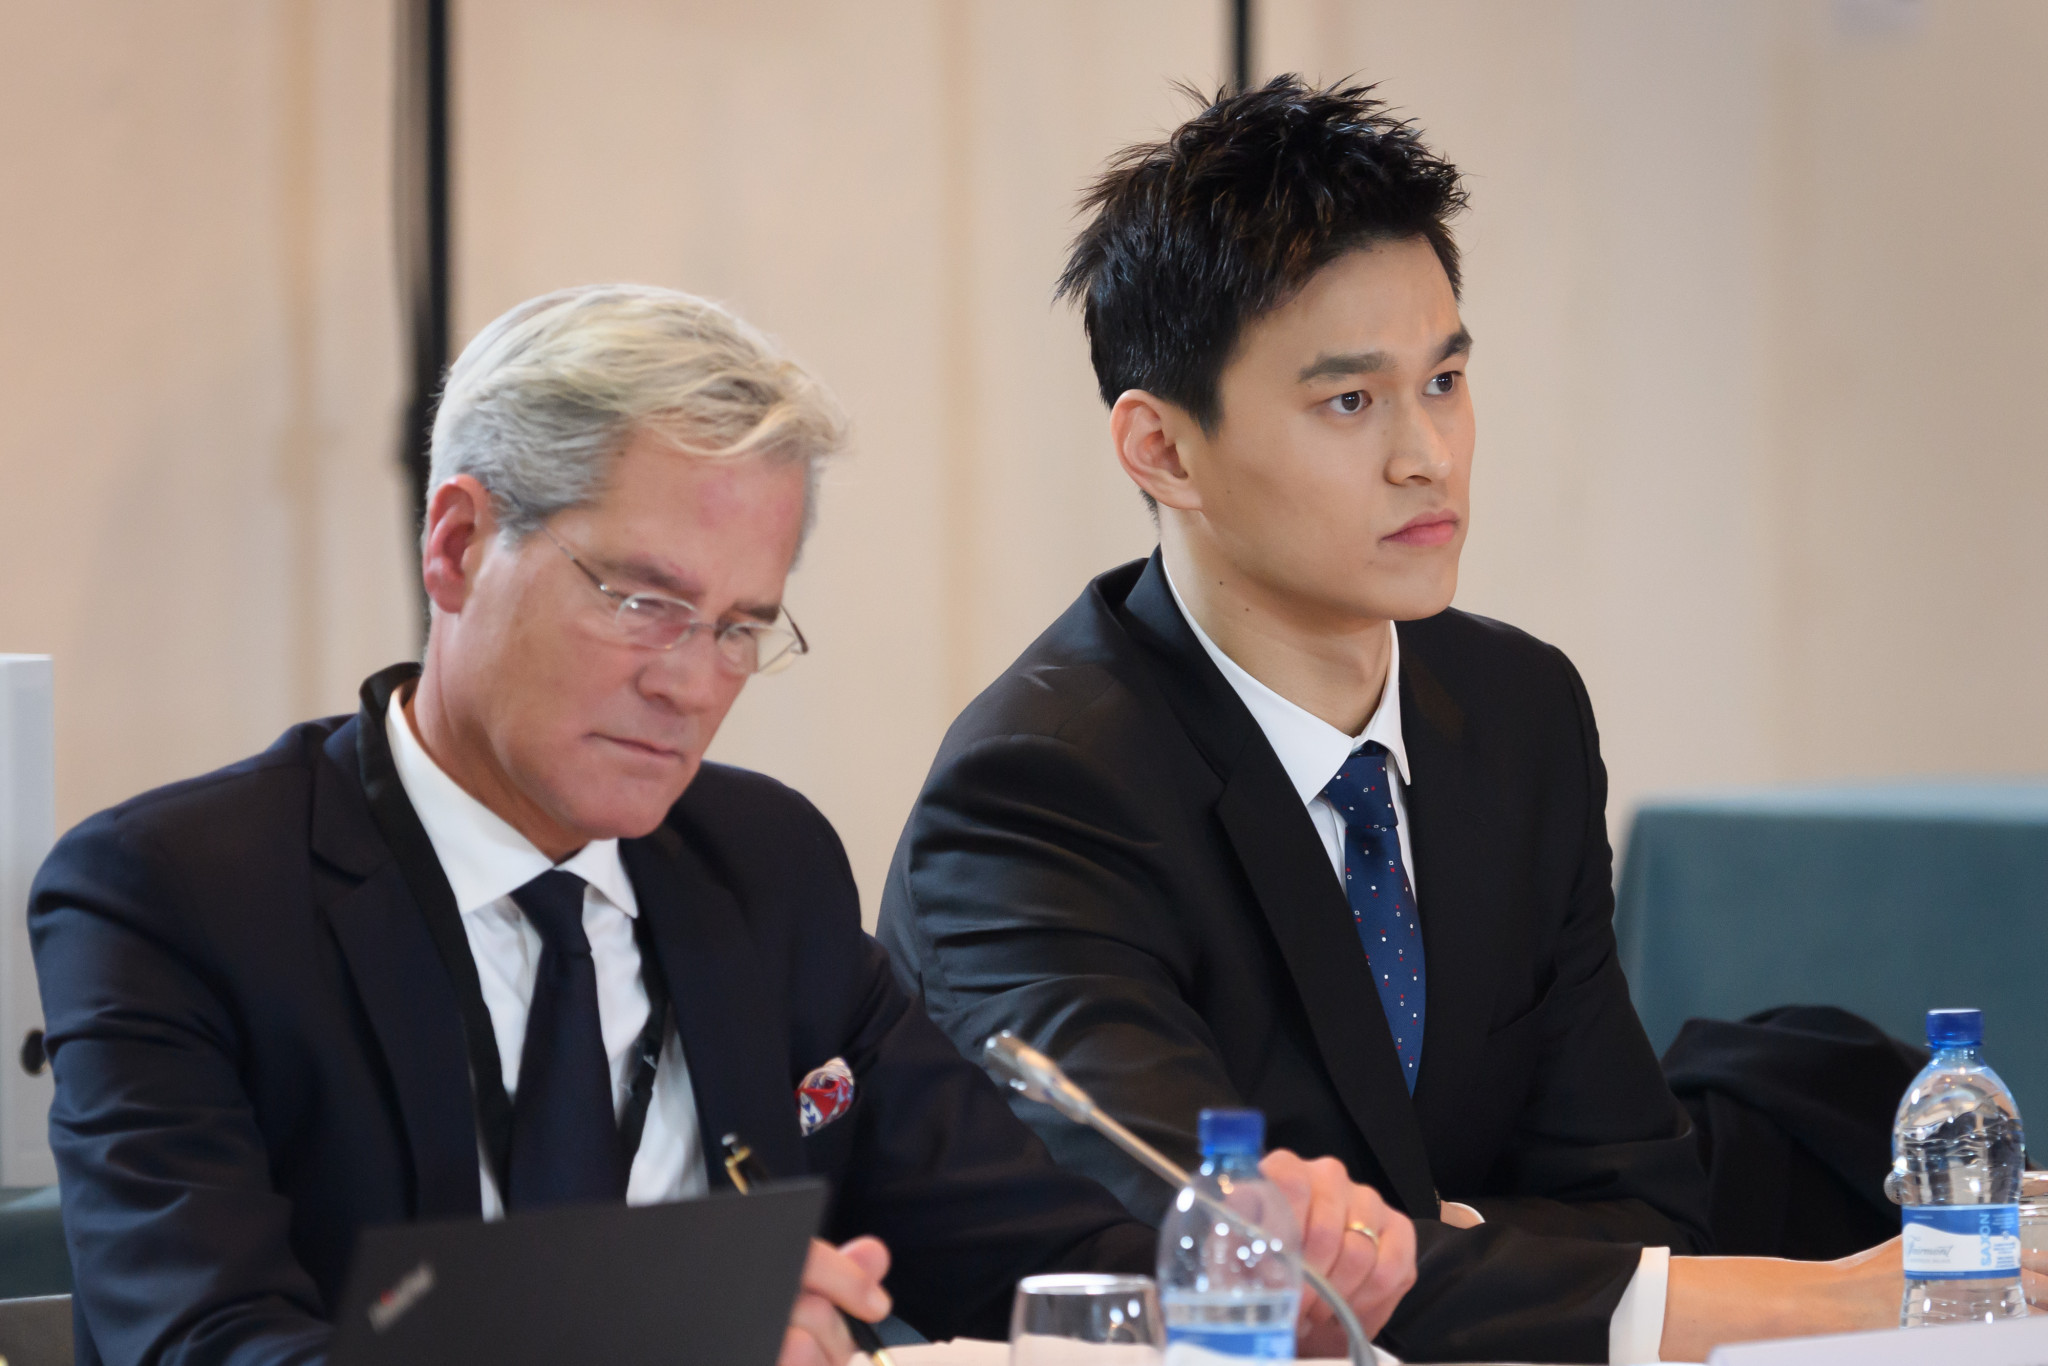 A rehearing of the case against Sun Yang took place after the President of the previous panel was removed following a series of discriminatory tweets ©Getty Images